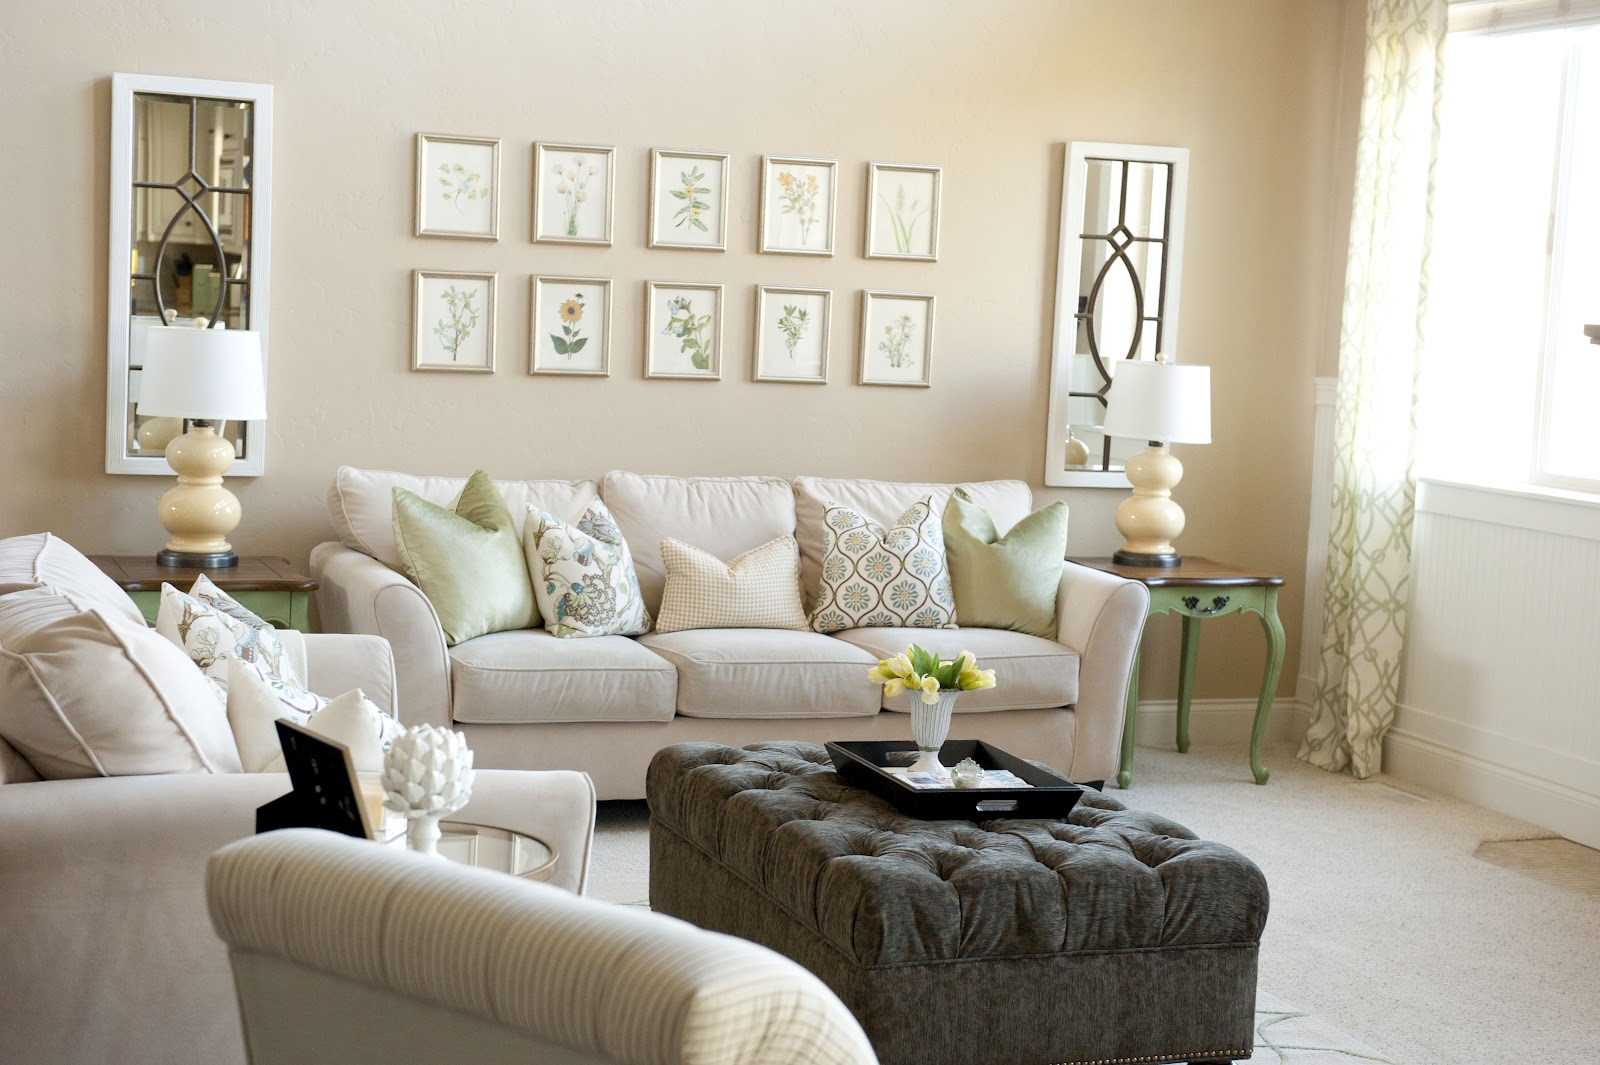 Most popular living room paint colors 2012 - Home Interior Paint Colors For 2012